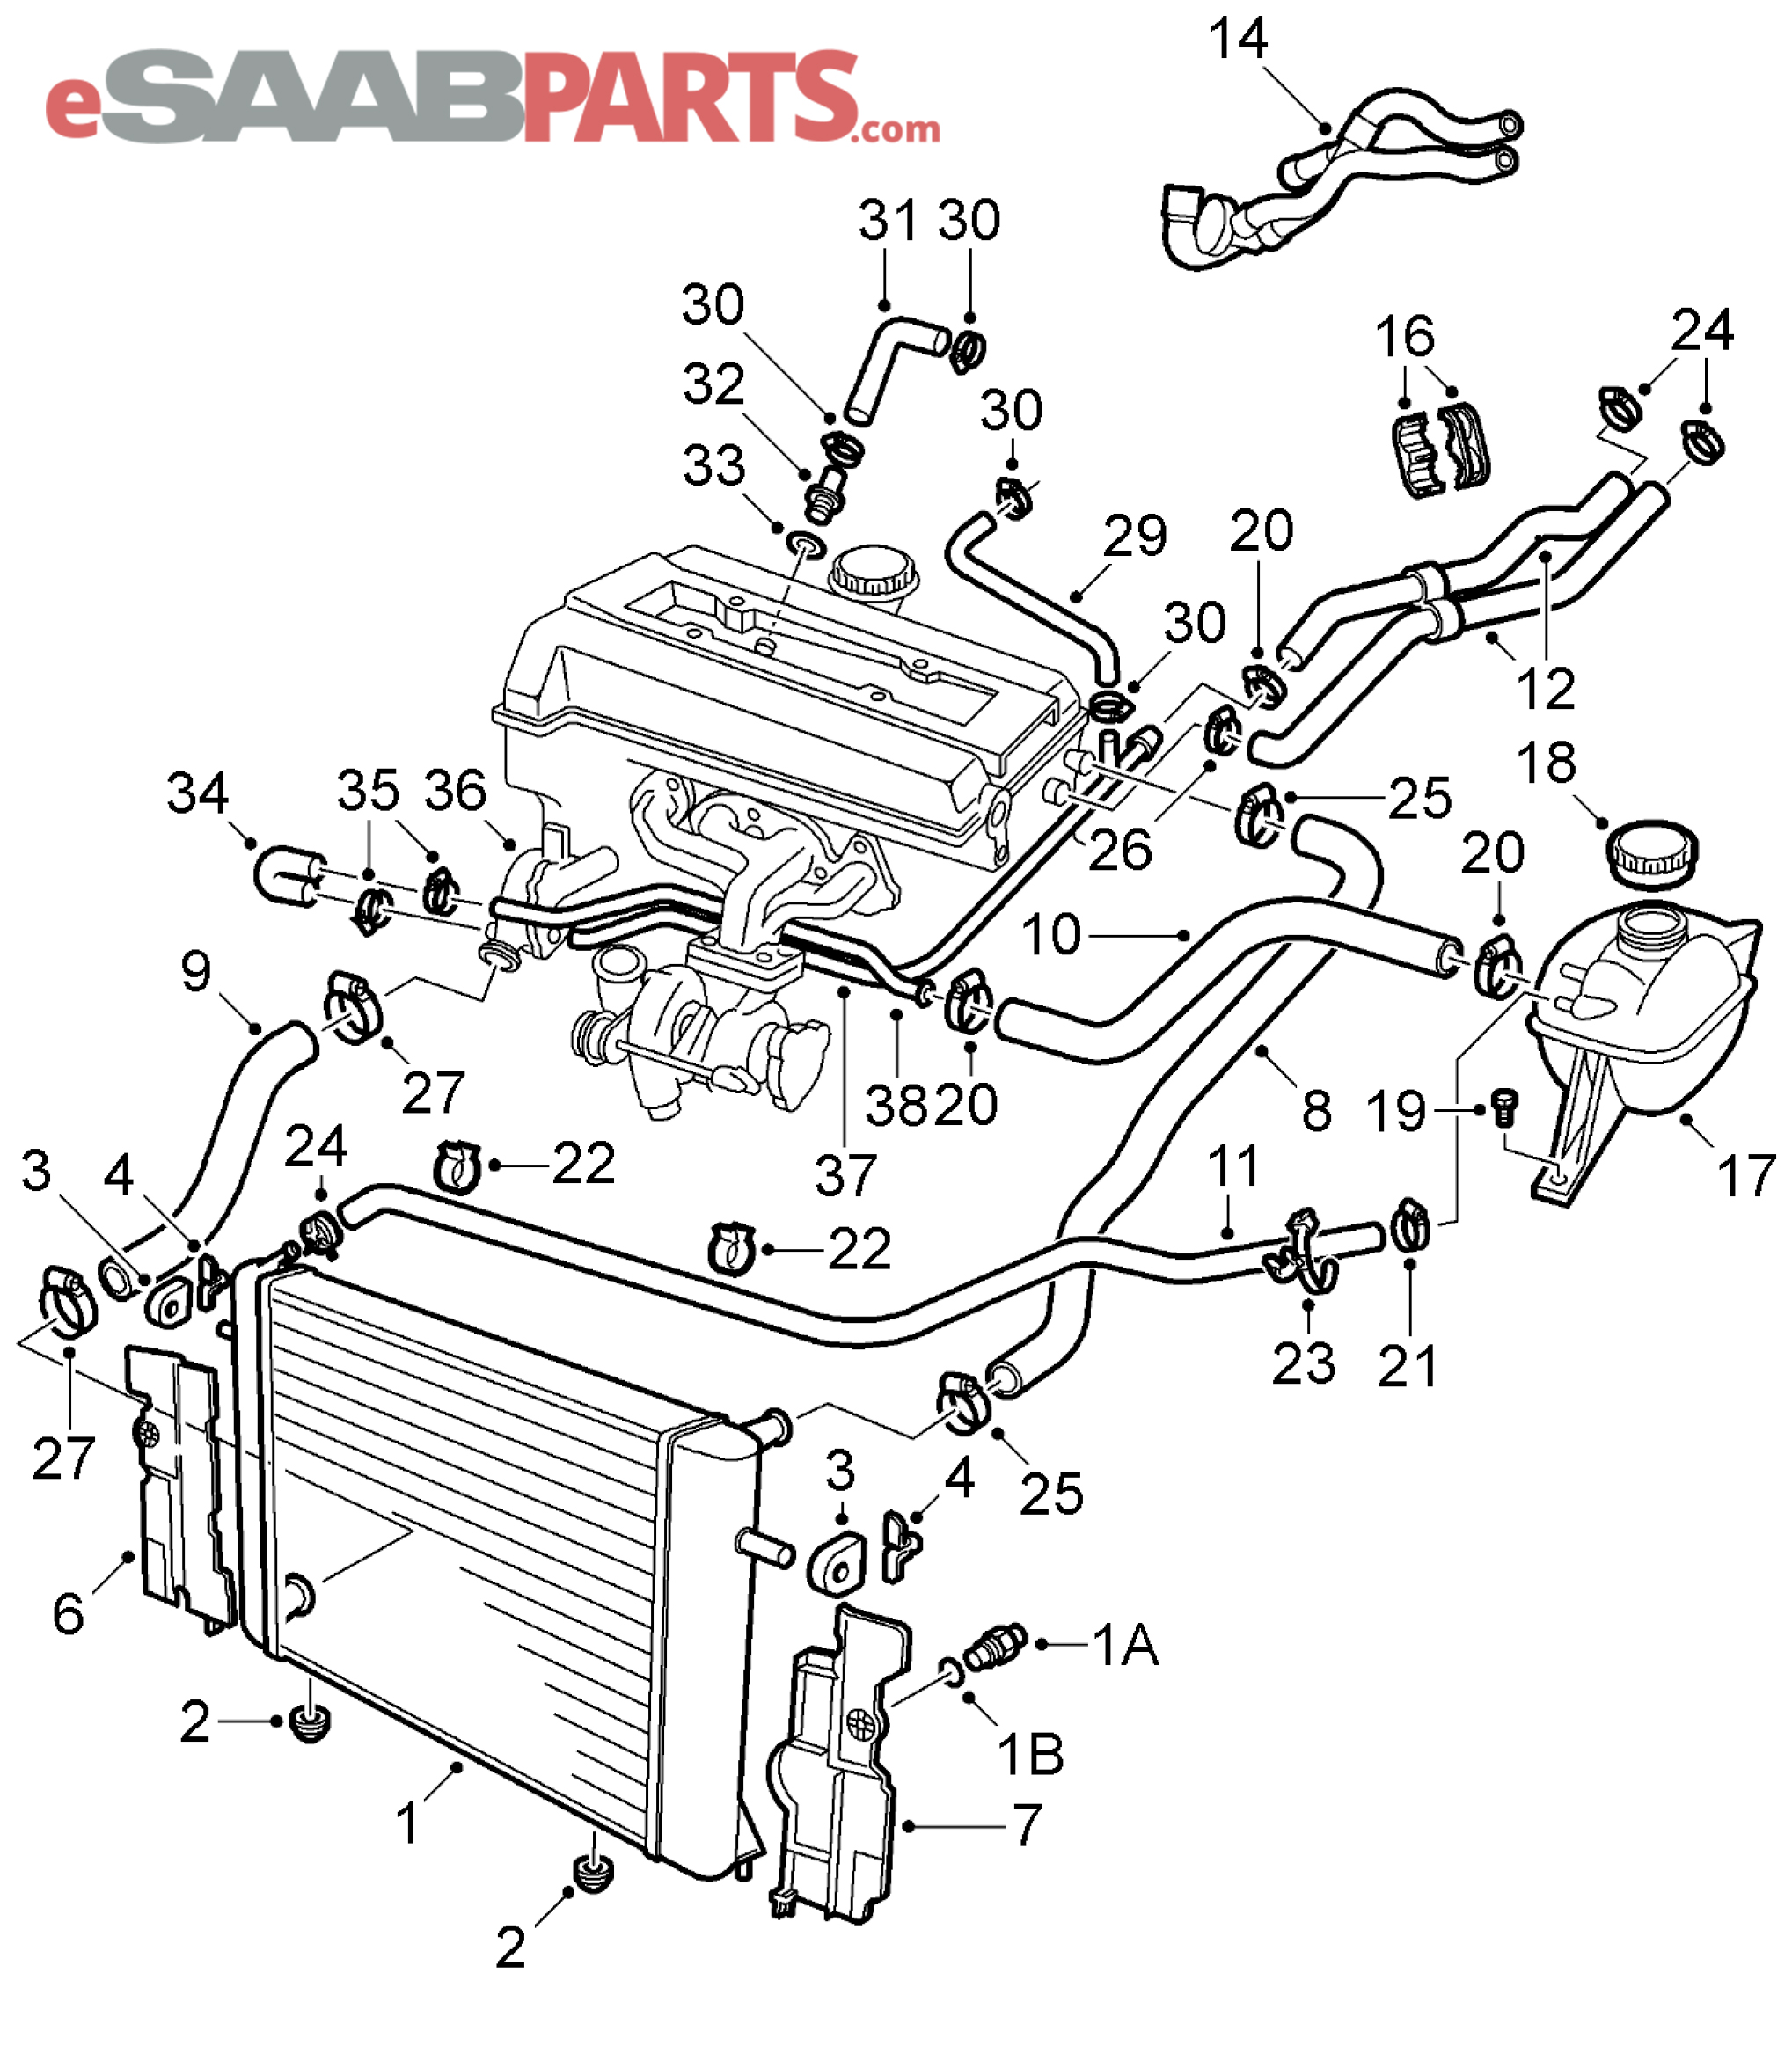 2004 Saab 9 3 Wiring Diagram Simple Guide About Stereo Harness 5 Cooling Parts Library Audio